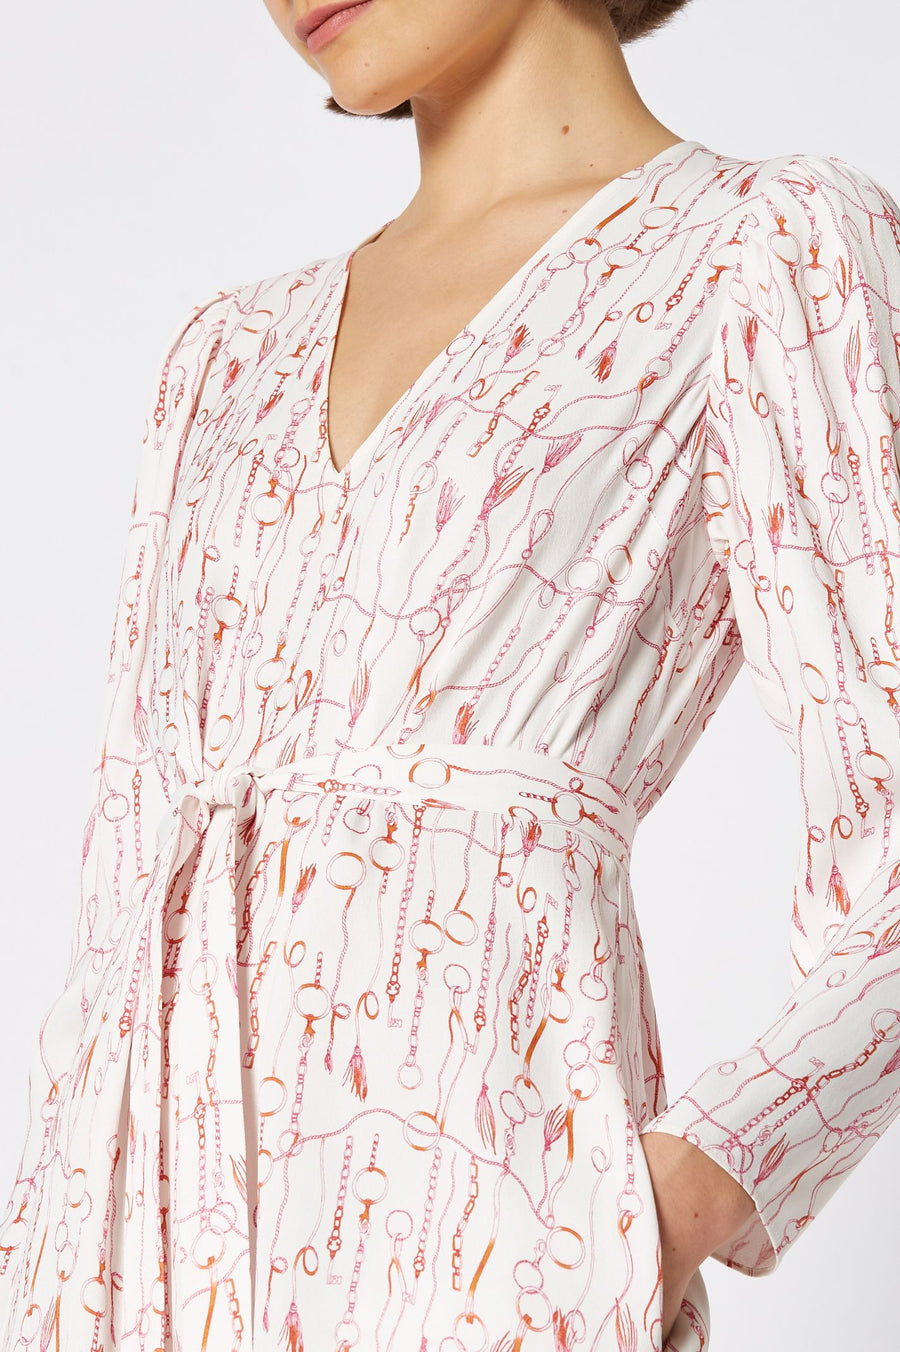 CHAIN PRINT DRESS, falls just above the knee with 3 quarter sleeves and tie belt, color white pink